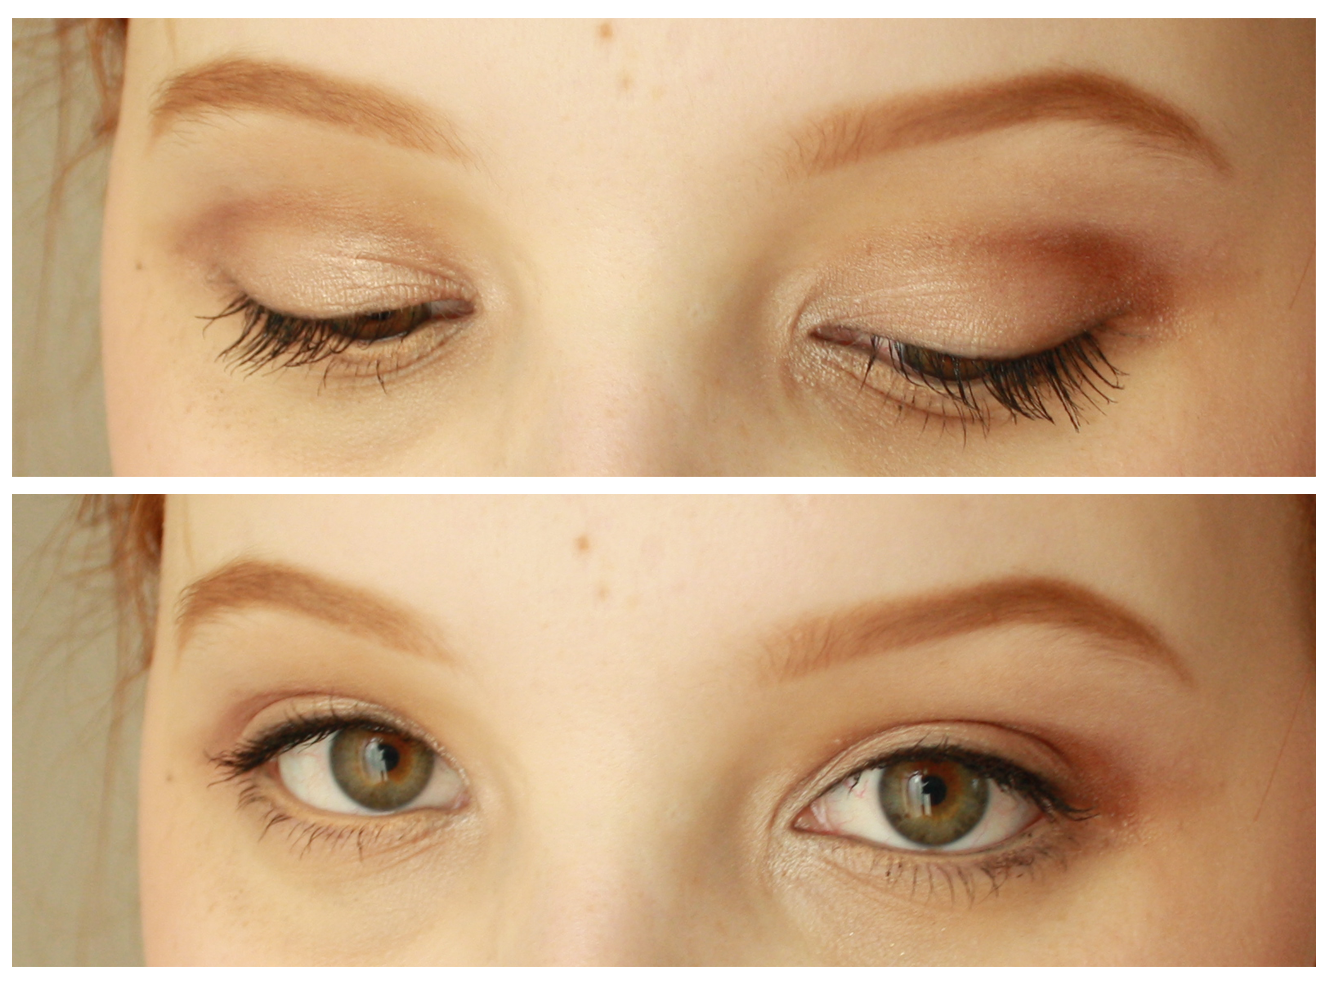 How to do eye makeup with just eyeliner